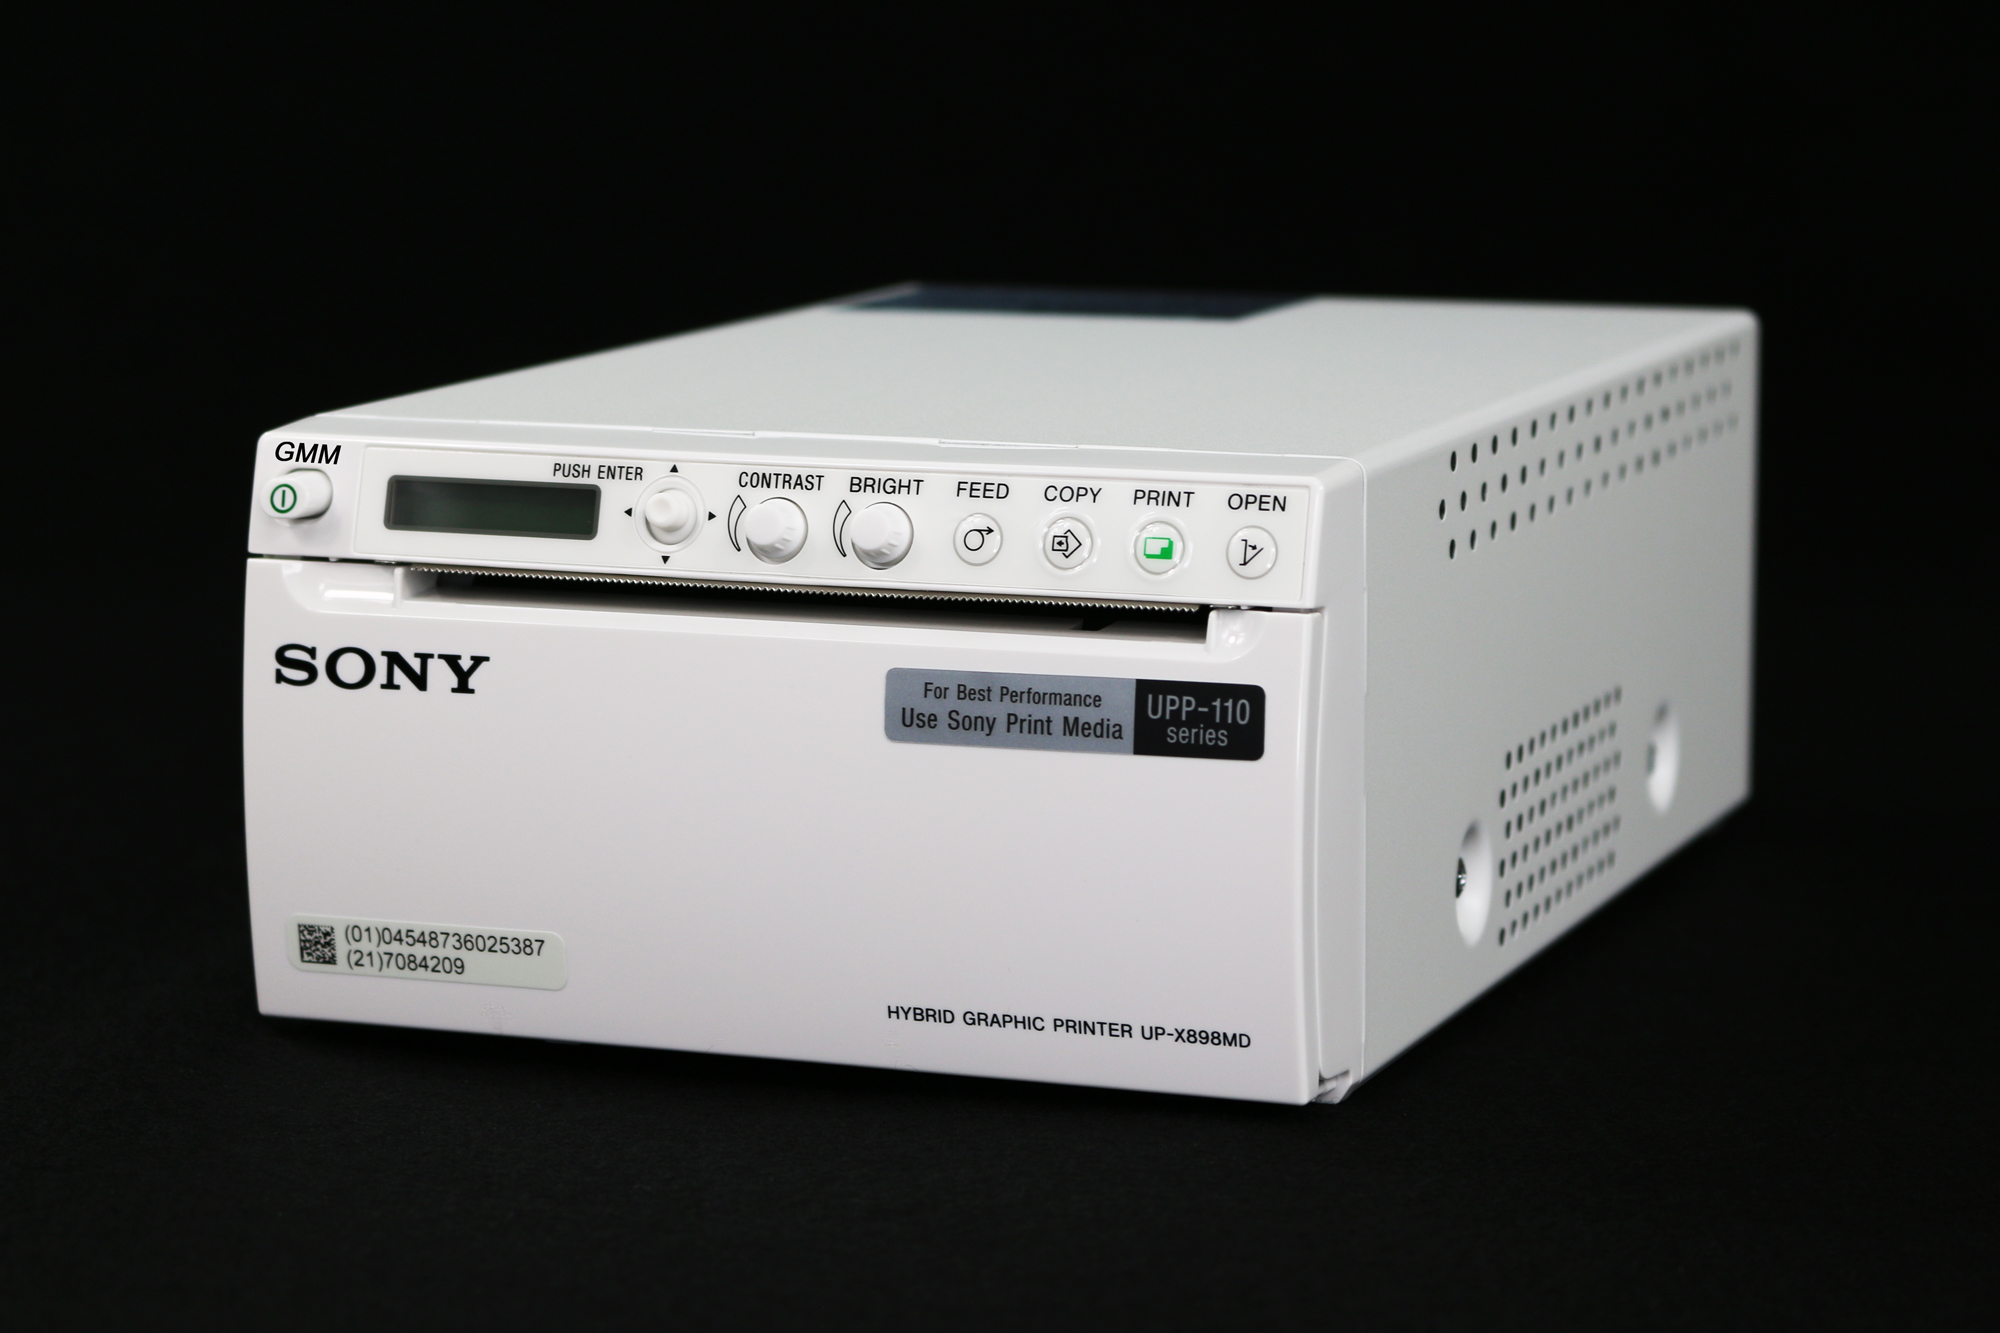 SONY Hybrid Graphic Printer UP-X898MD